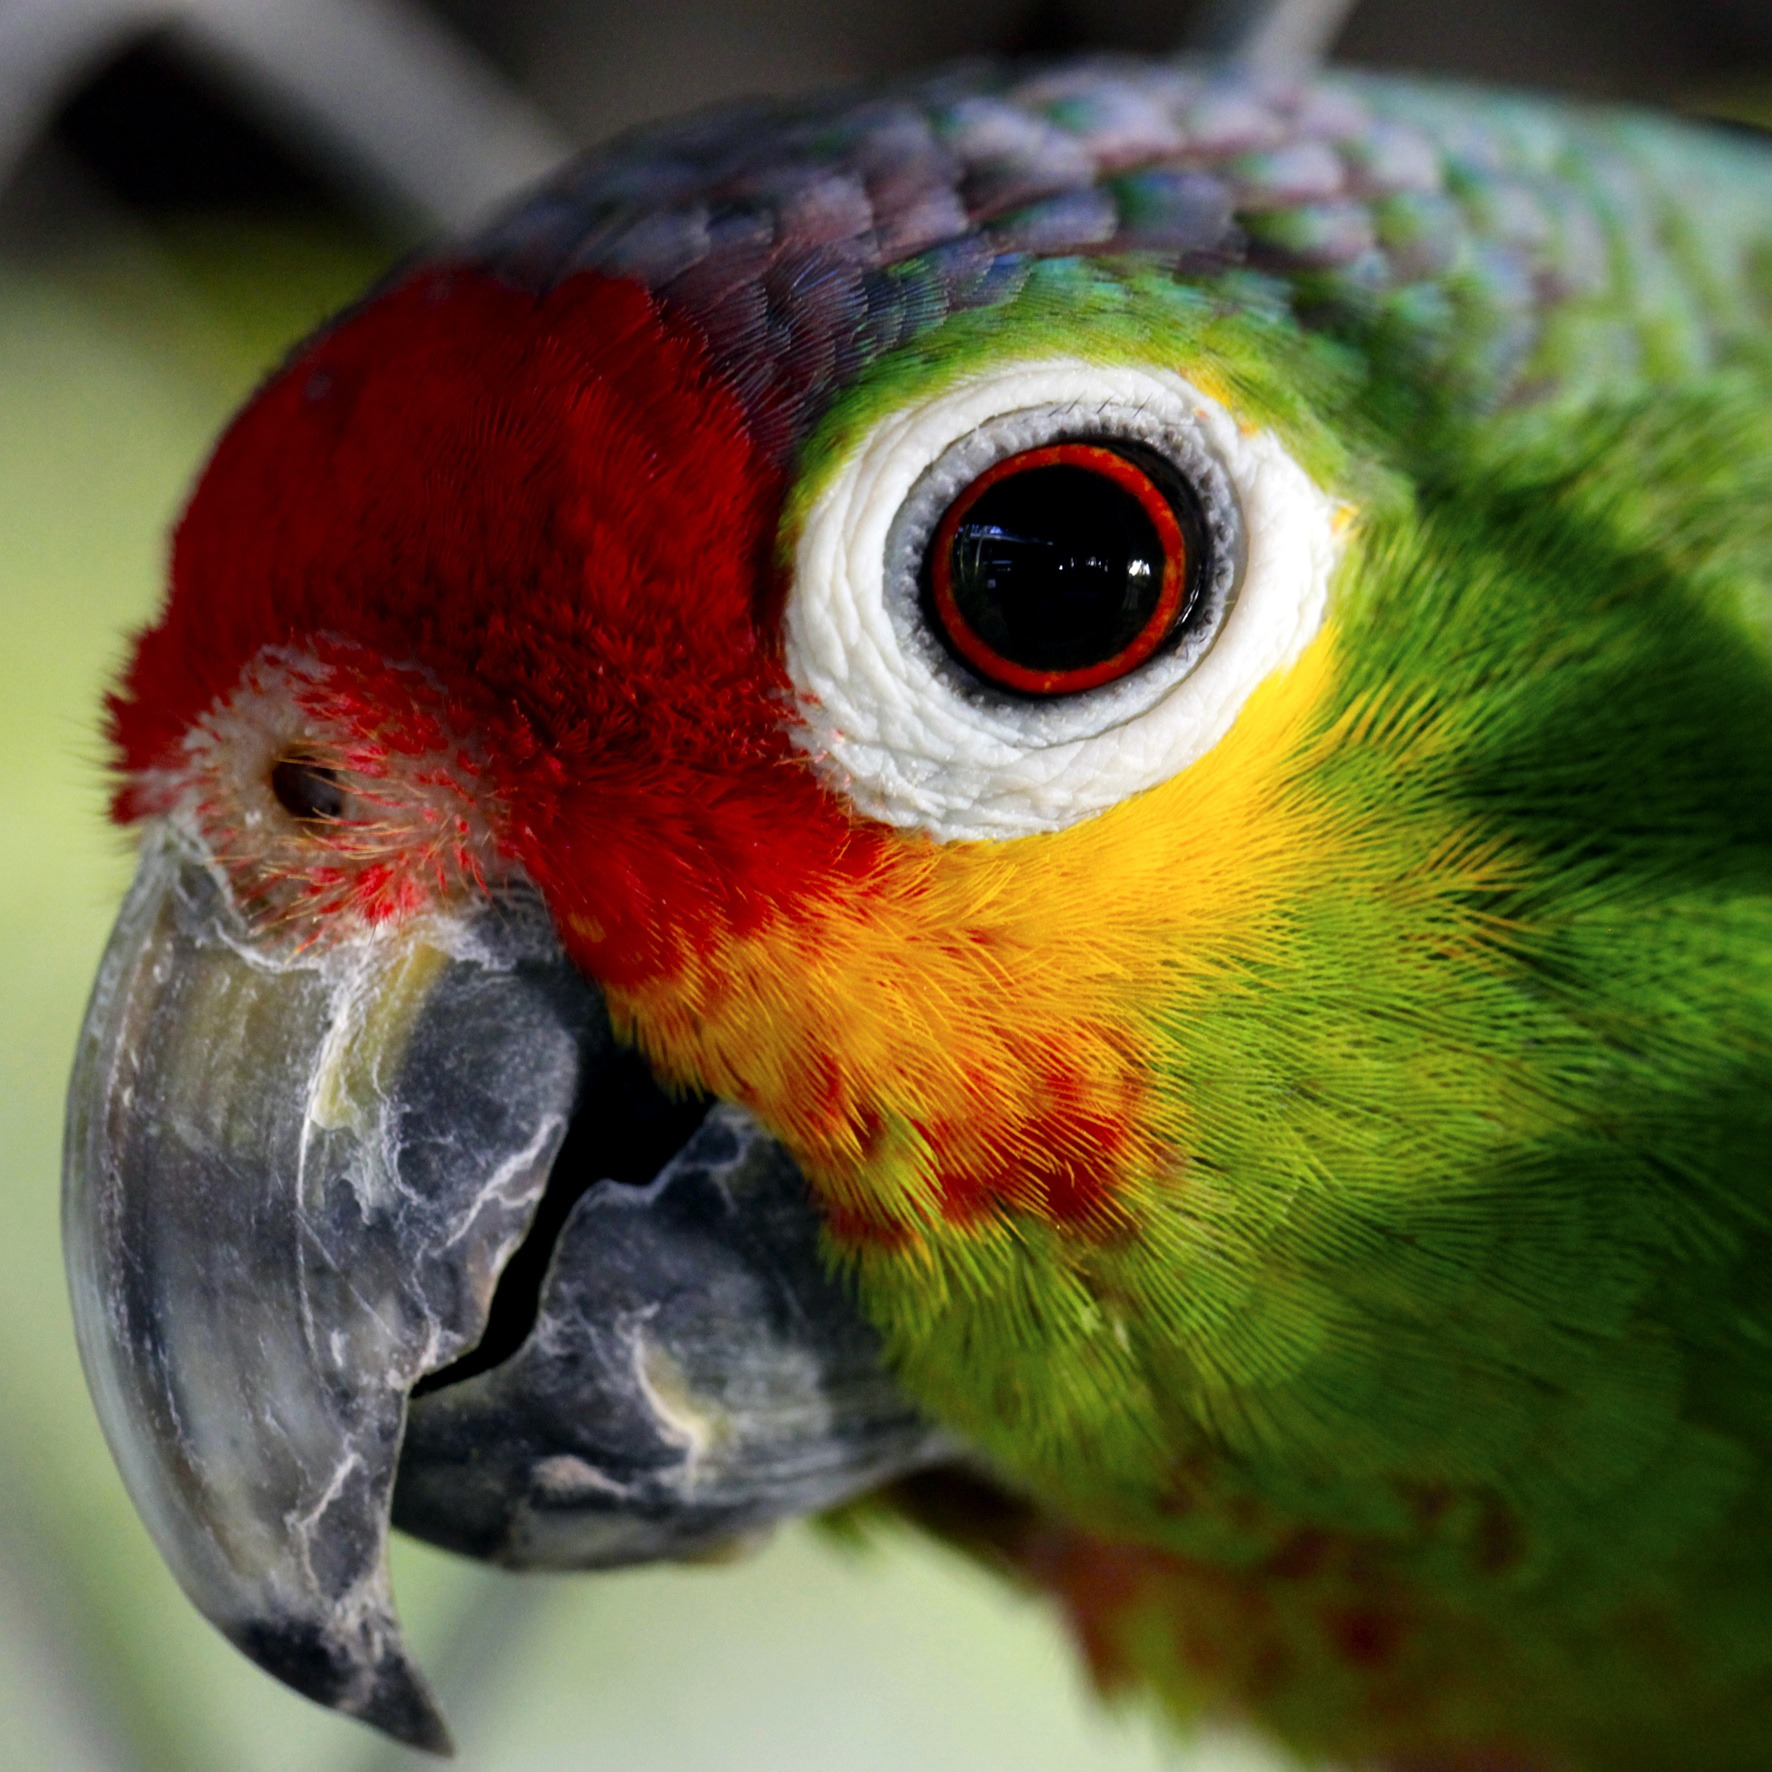 Lock Screen Wallpaper Hd Close Up Photo Of Green Red And Yellow Bird 183 Free Stock Photo